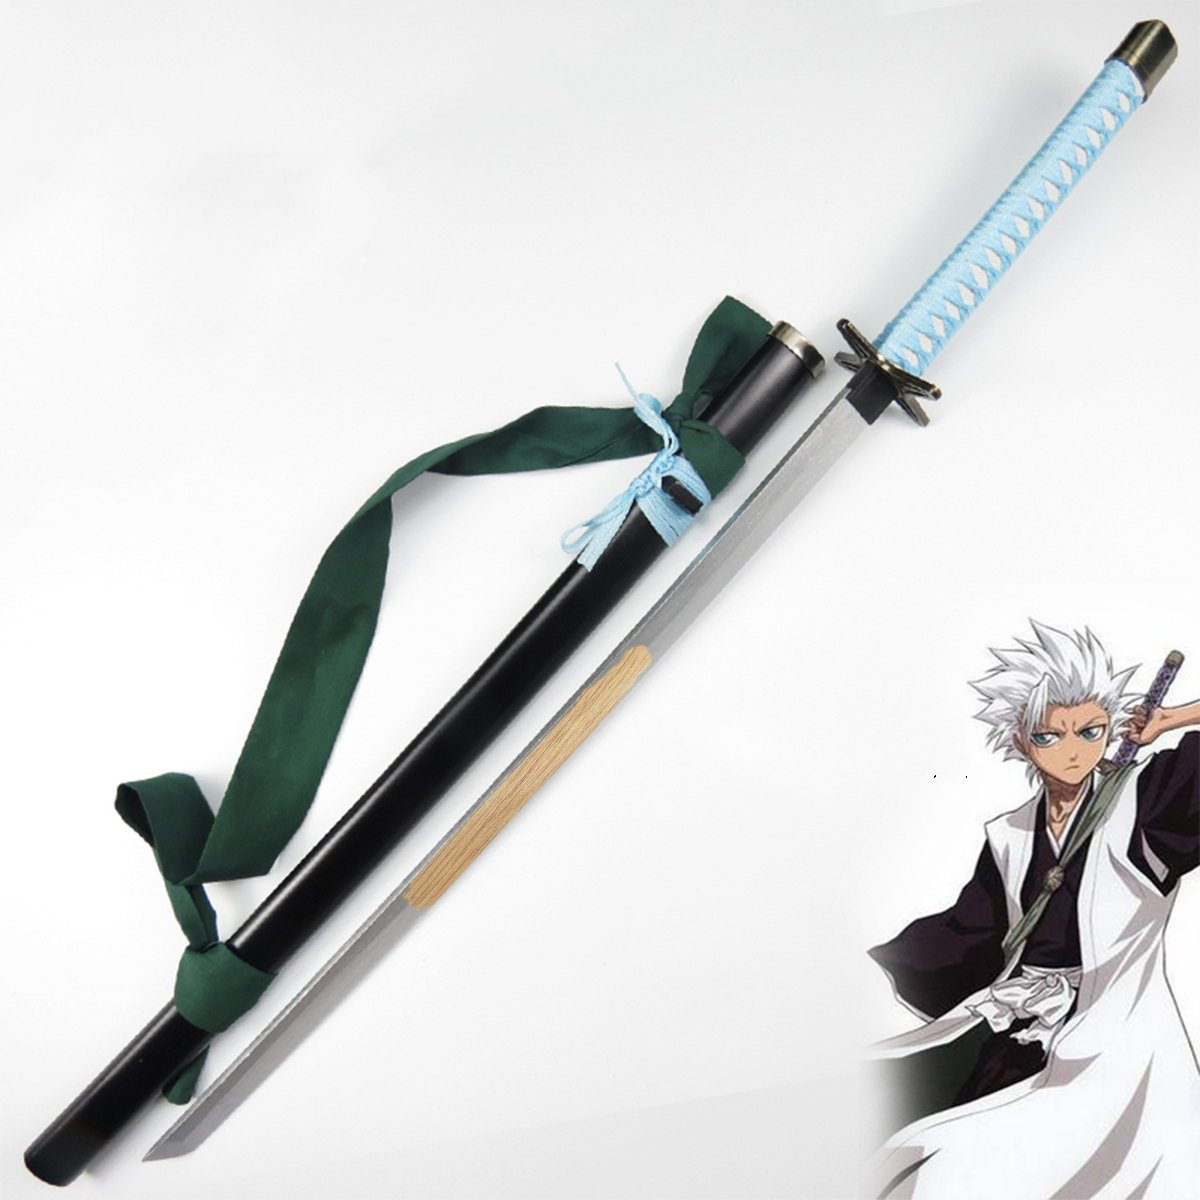 Bleach Hitsugaya Toushirou Hyourinmaru Wooden Sword Weapon Props For Anime Show And Chrismas New Year Costume Party Costume Props Aliexpress